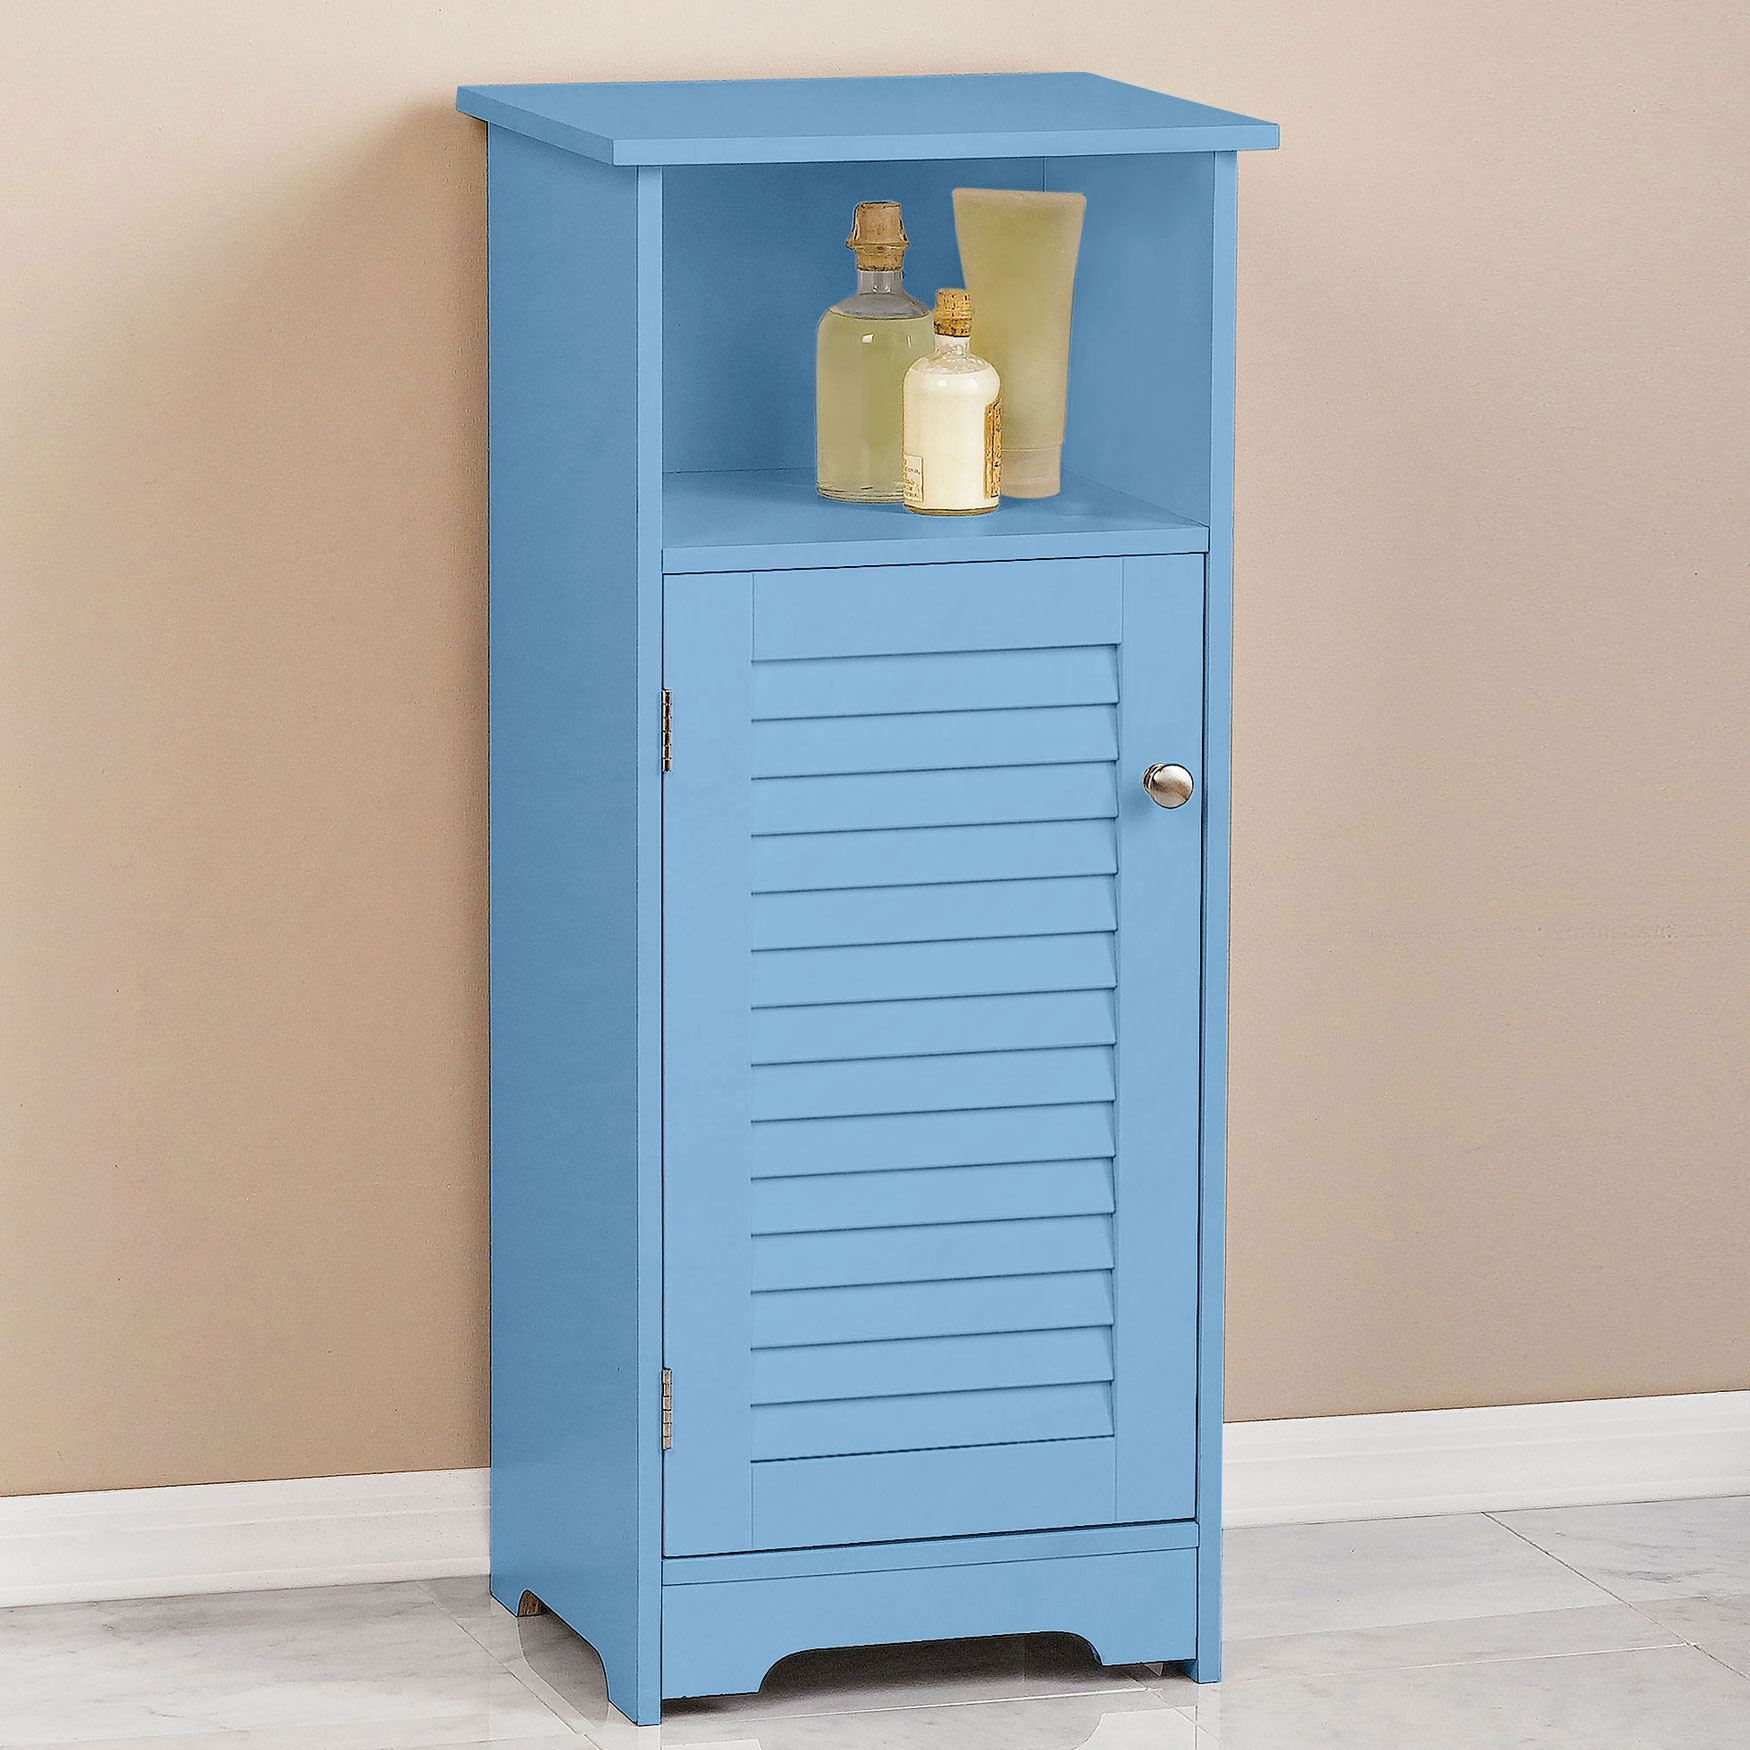 Louvre Short Cabinet with Cubby, BLUE